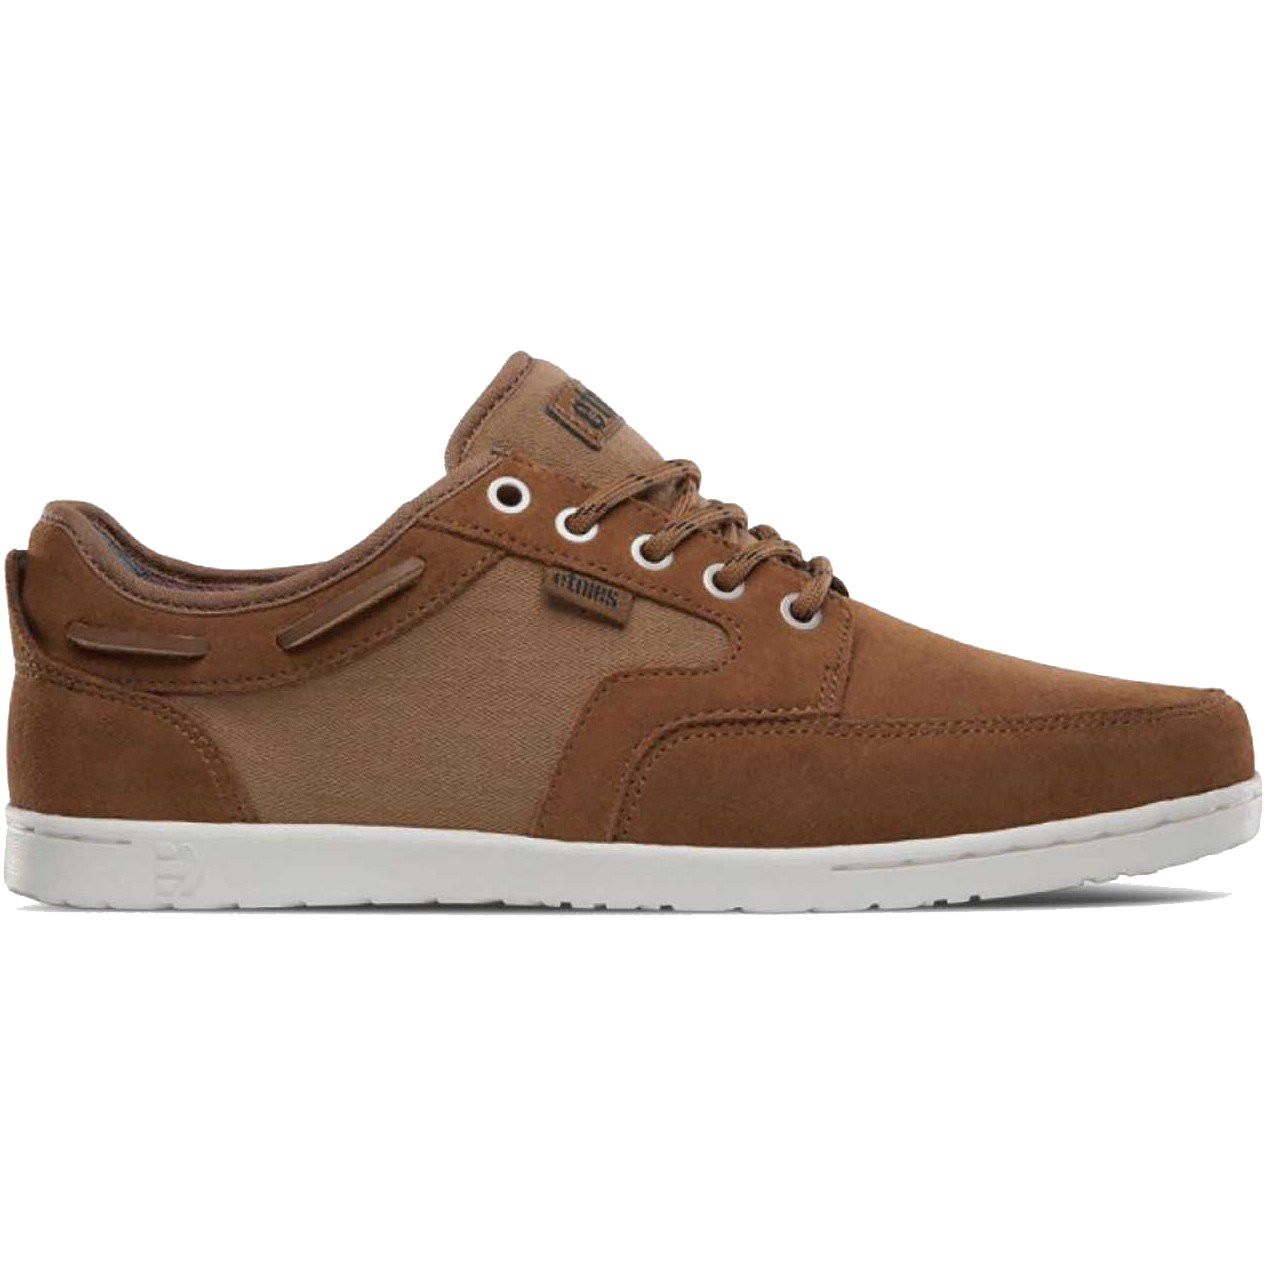 ETNIES ETNIES Dory SC Brown/Navy